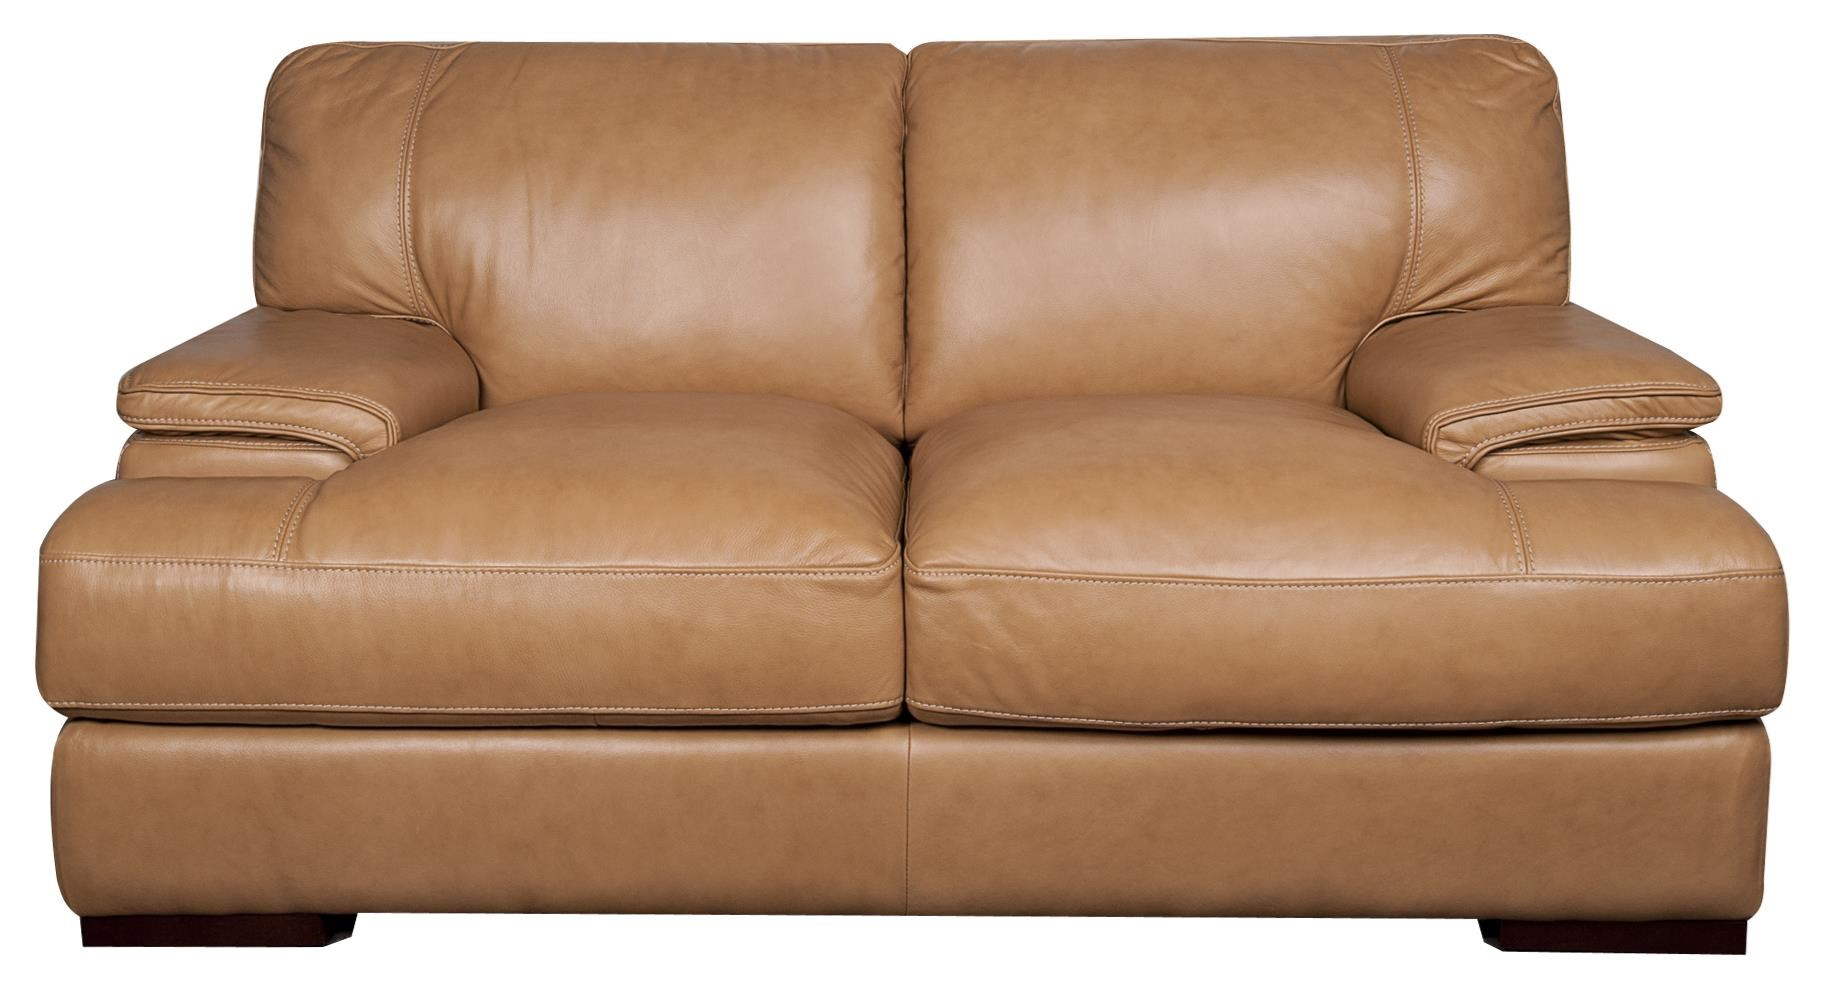 Morris Home Furnishings Titus Titus 100% Leather Loveseat - Item Number: 873473823